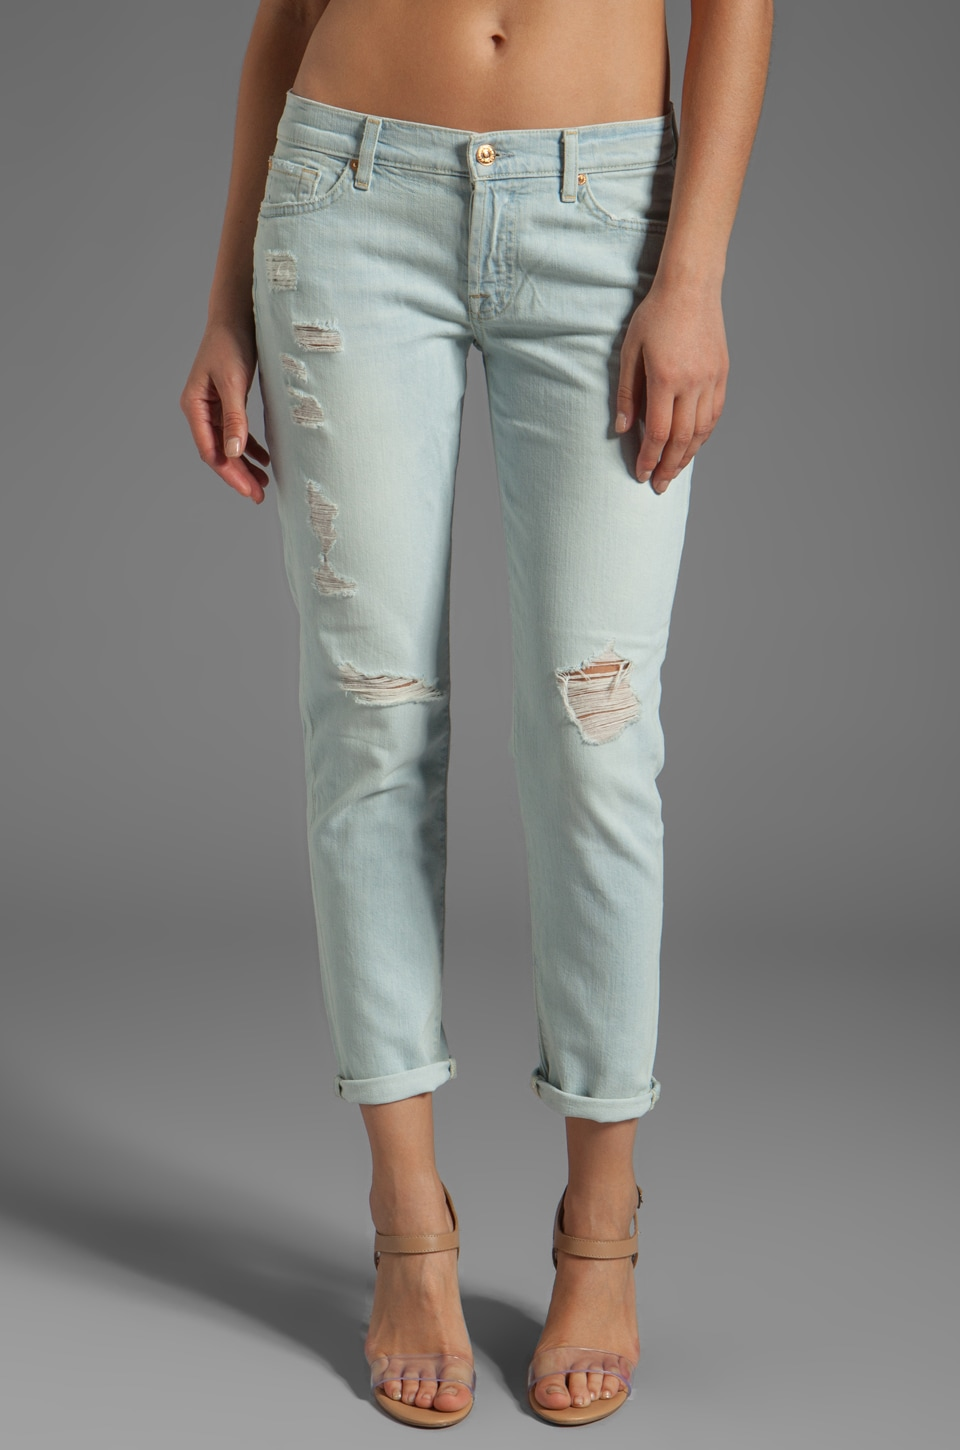 7 For All Mankind Josefina in Distressed Light